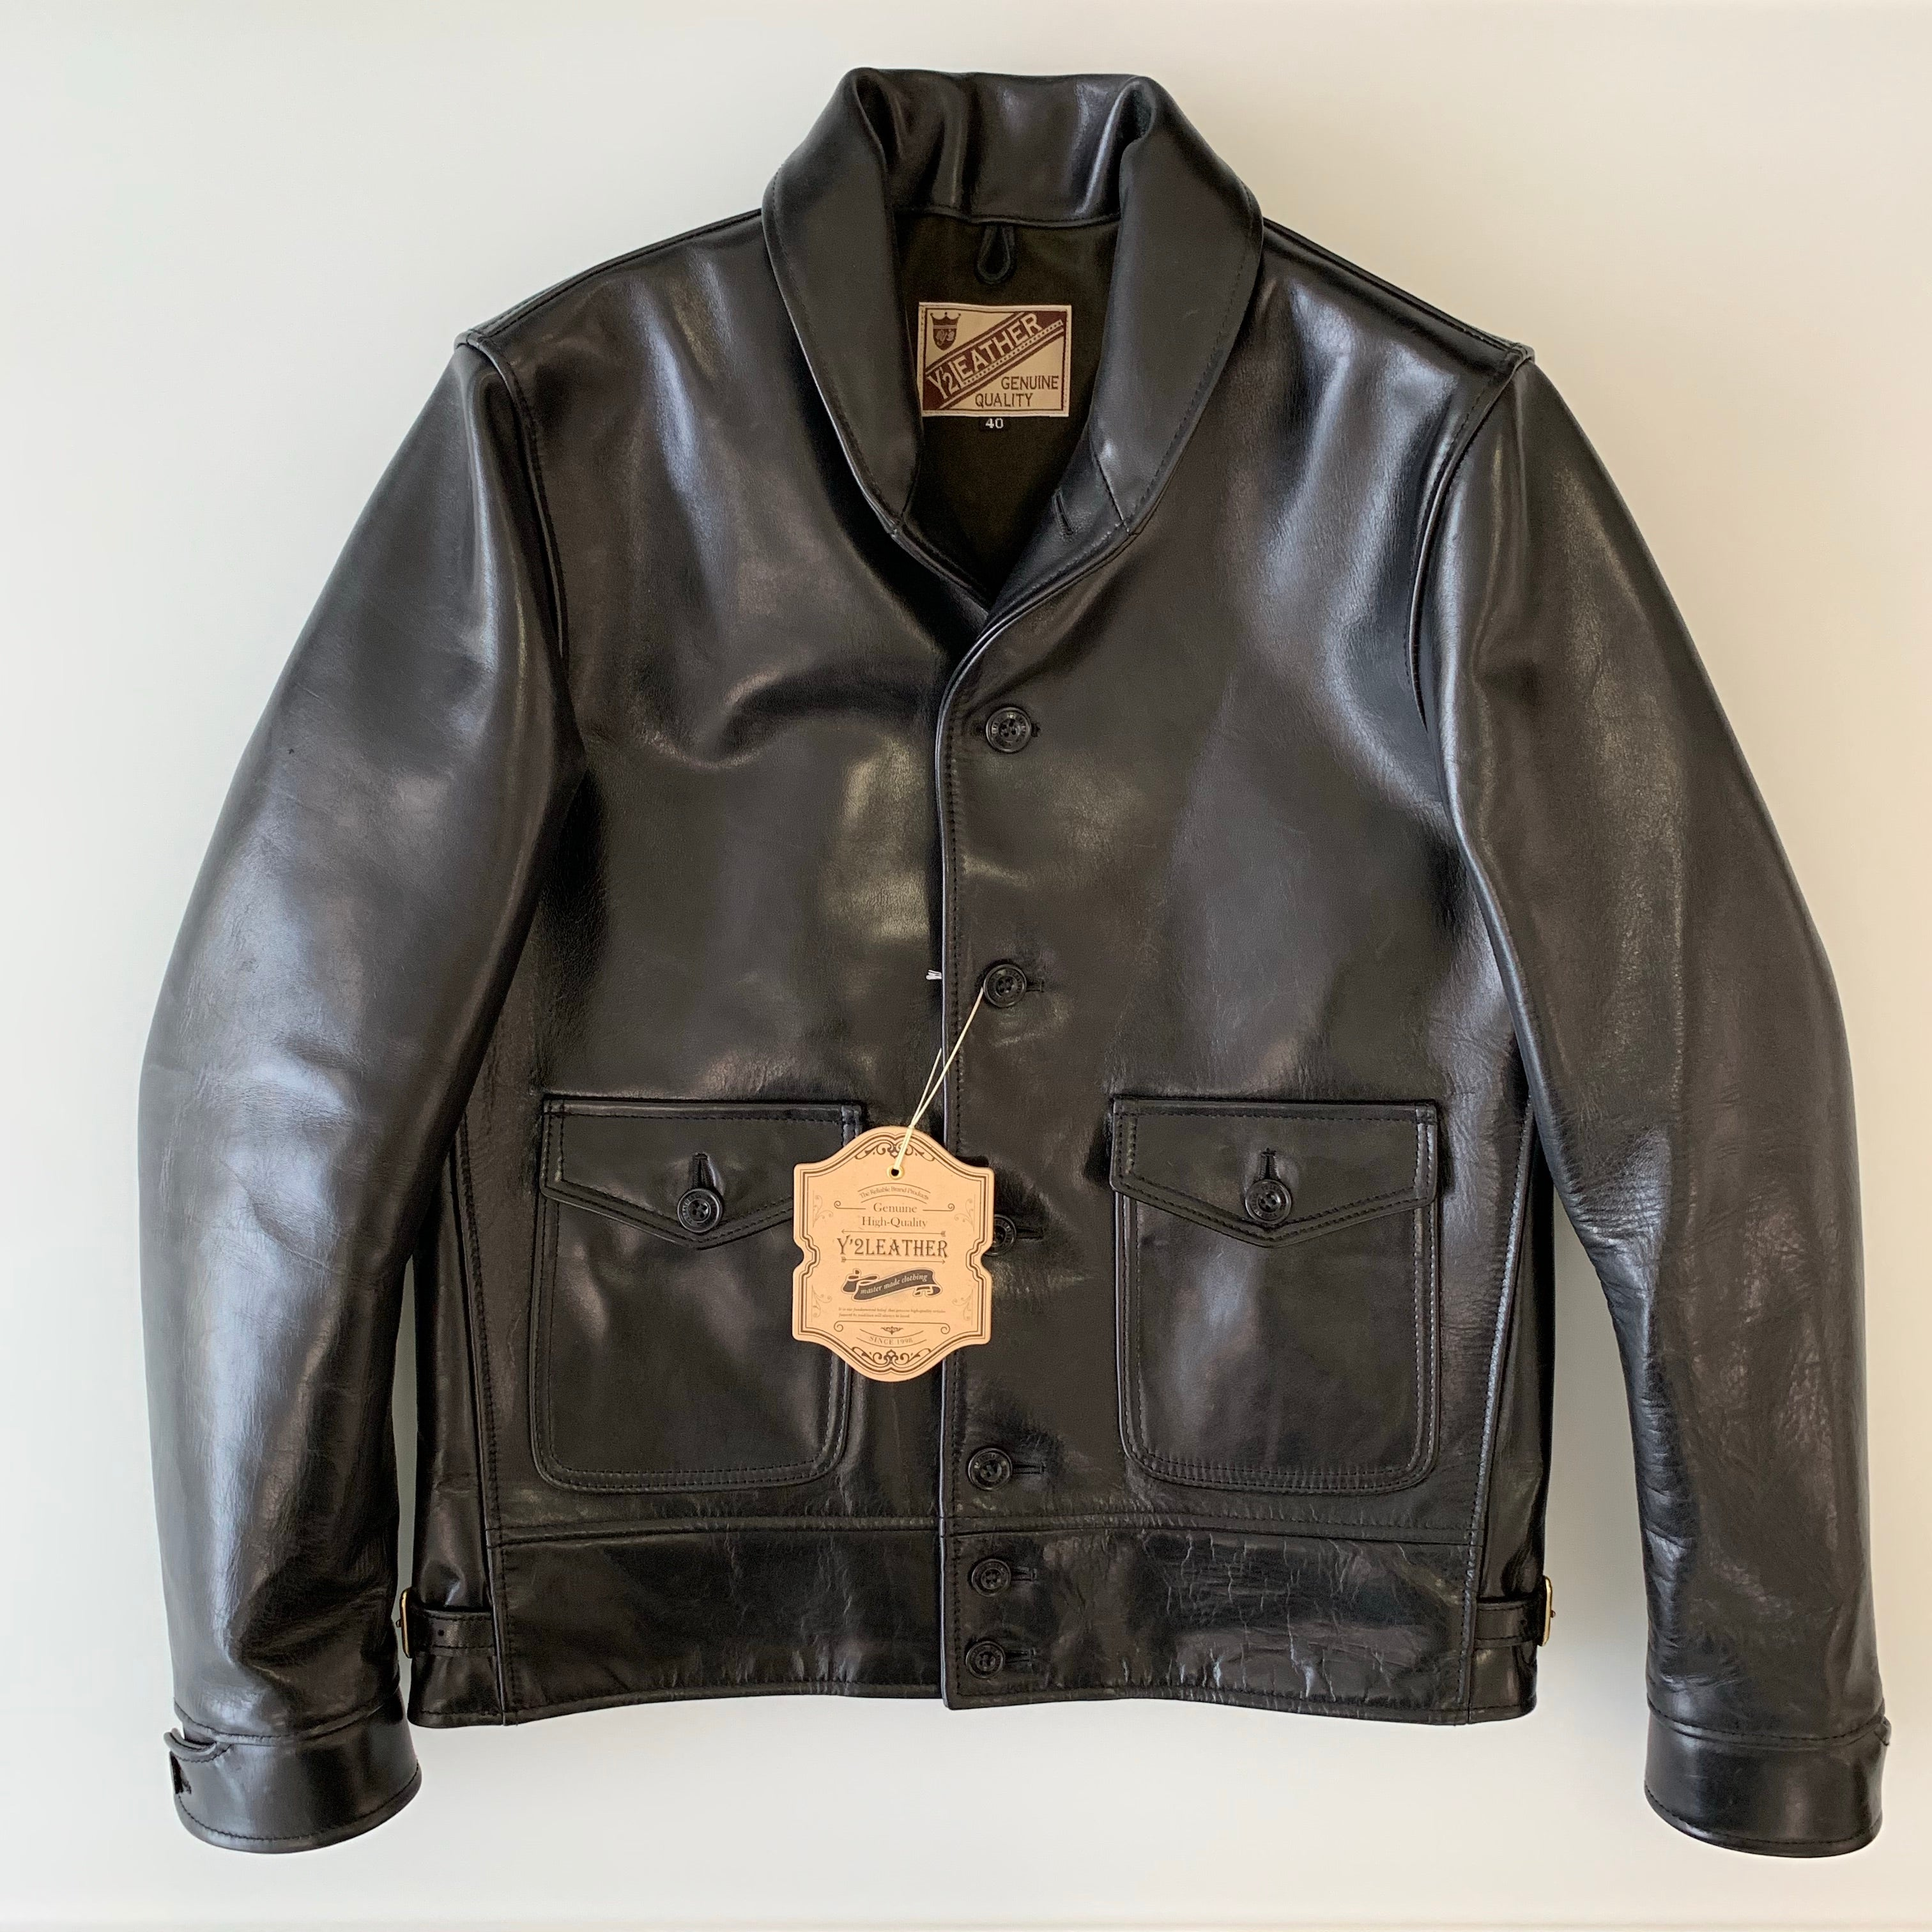 Aniline Horse Cossack Jacket A-1 in Black